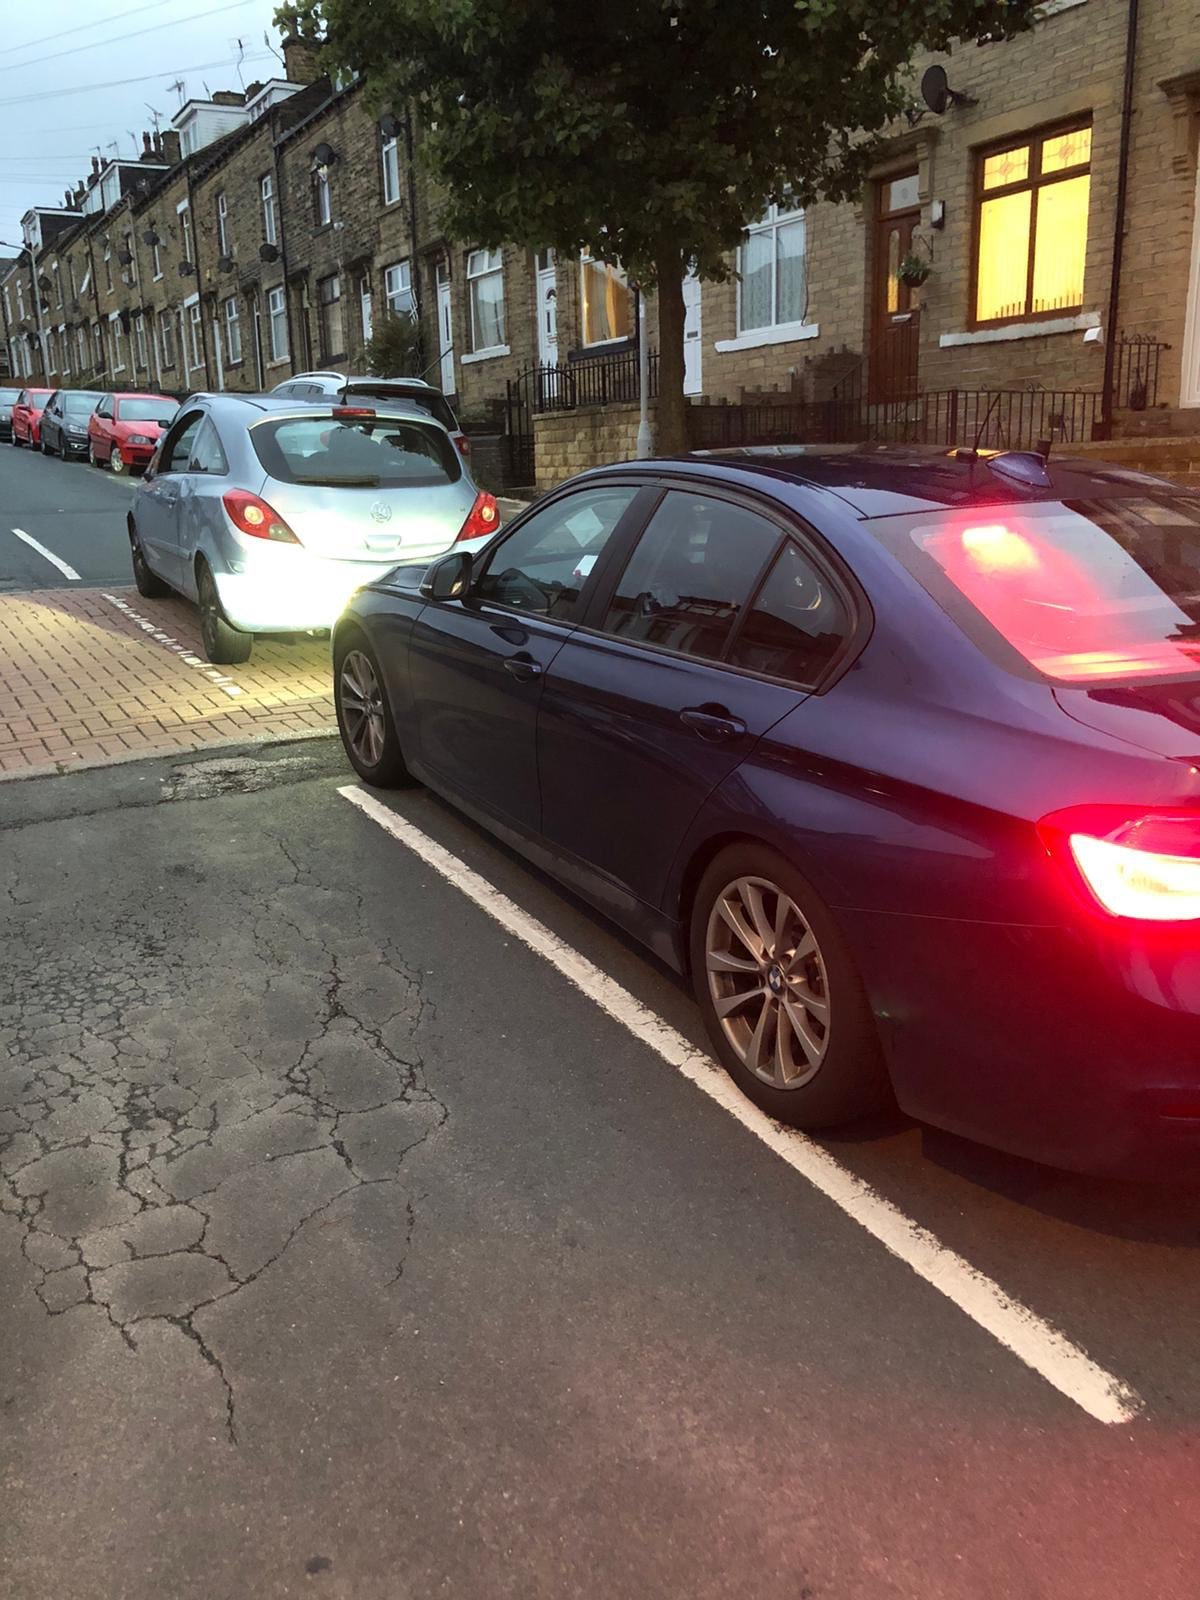 Driver tells Bradford police insurance for Corsa too expensive